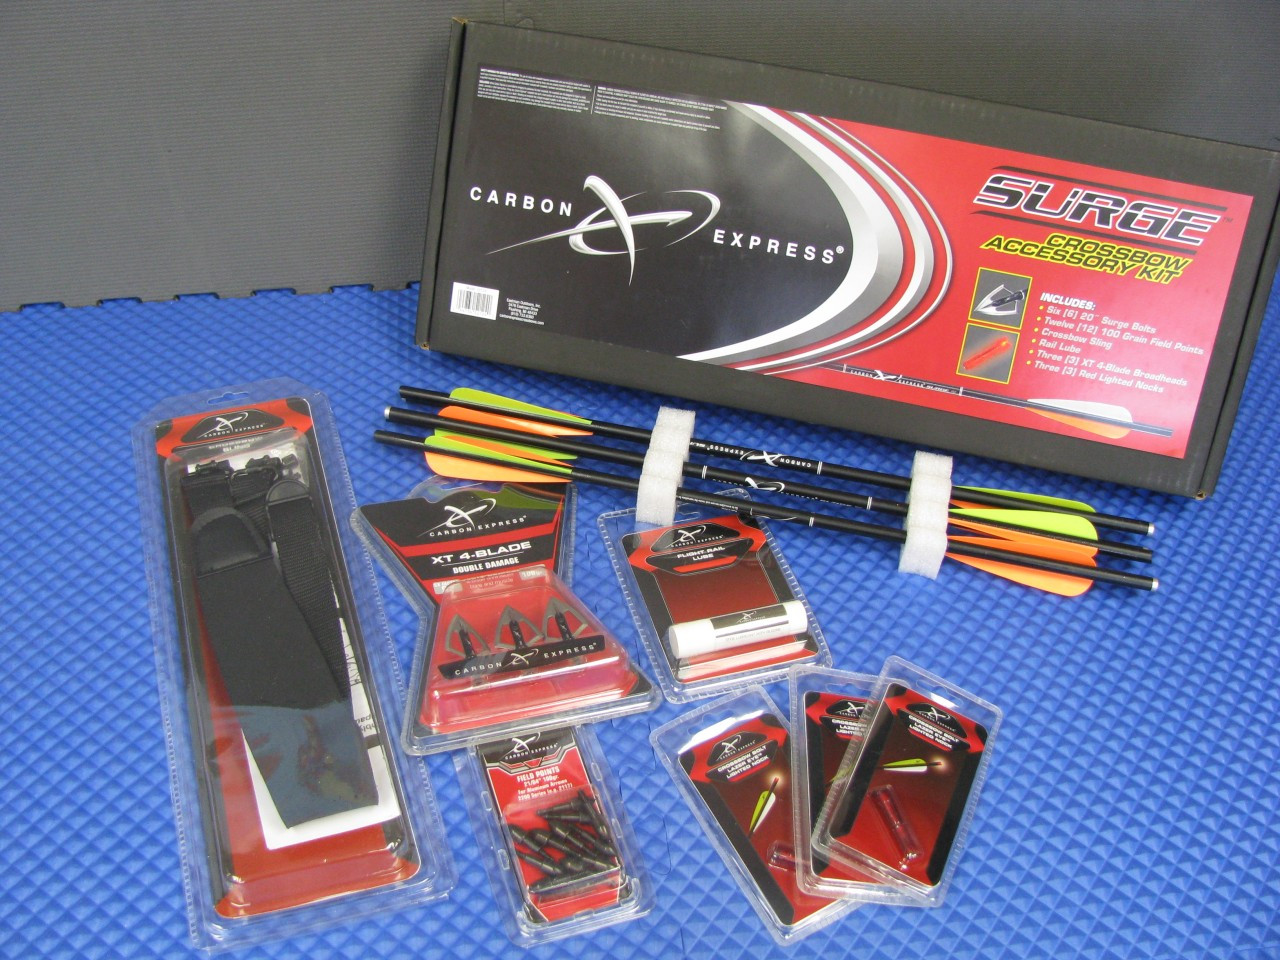 CARBON EXPRESS SURGE CROSSBOW ACCESSORY KIT 52124